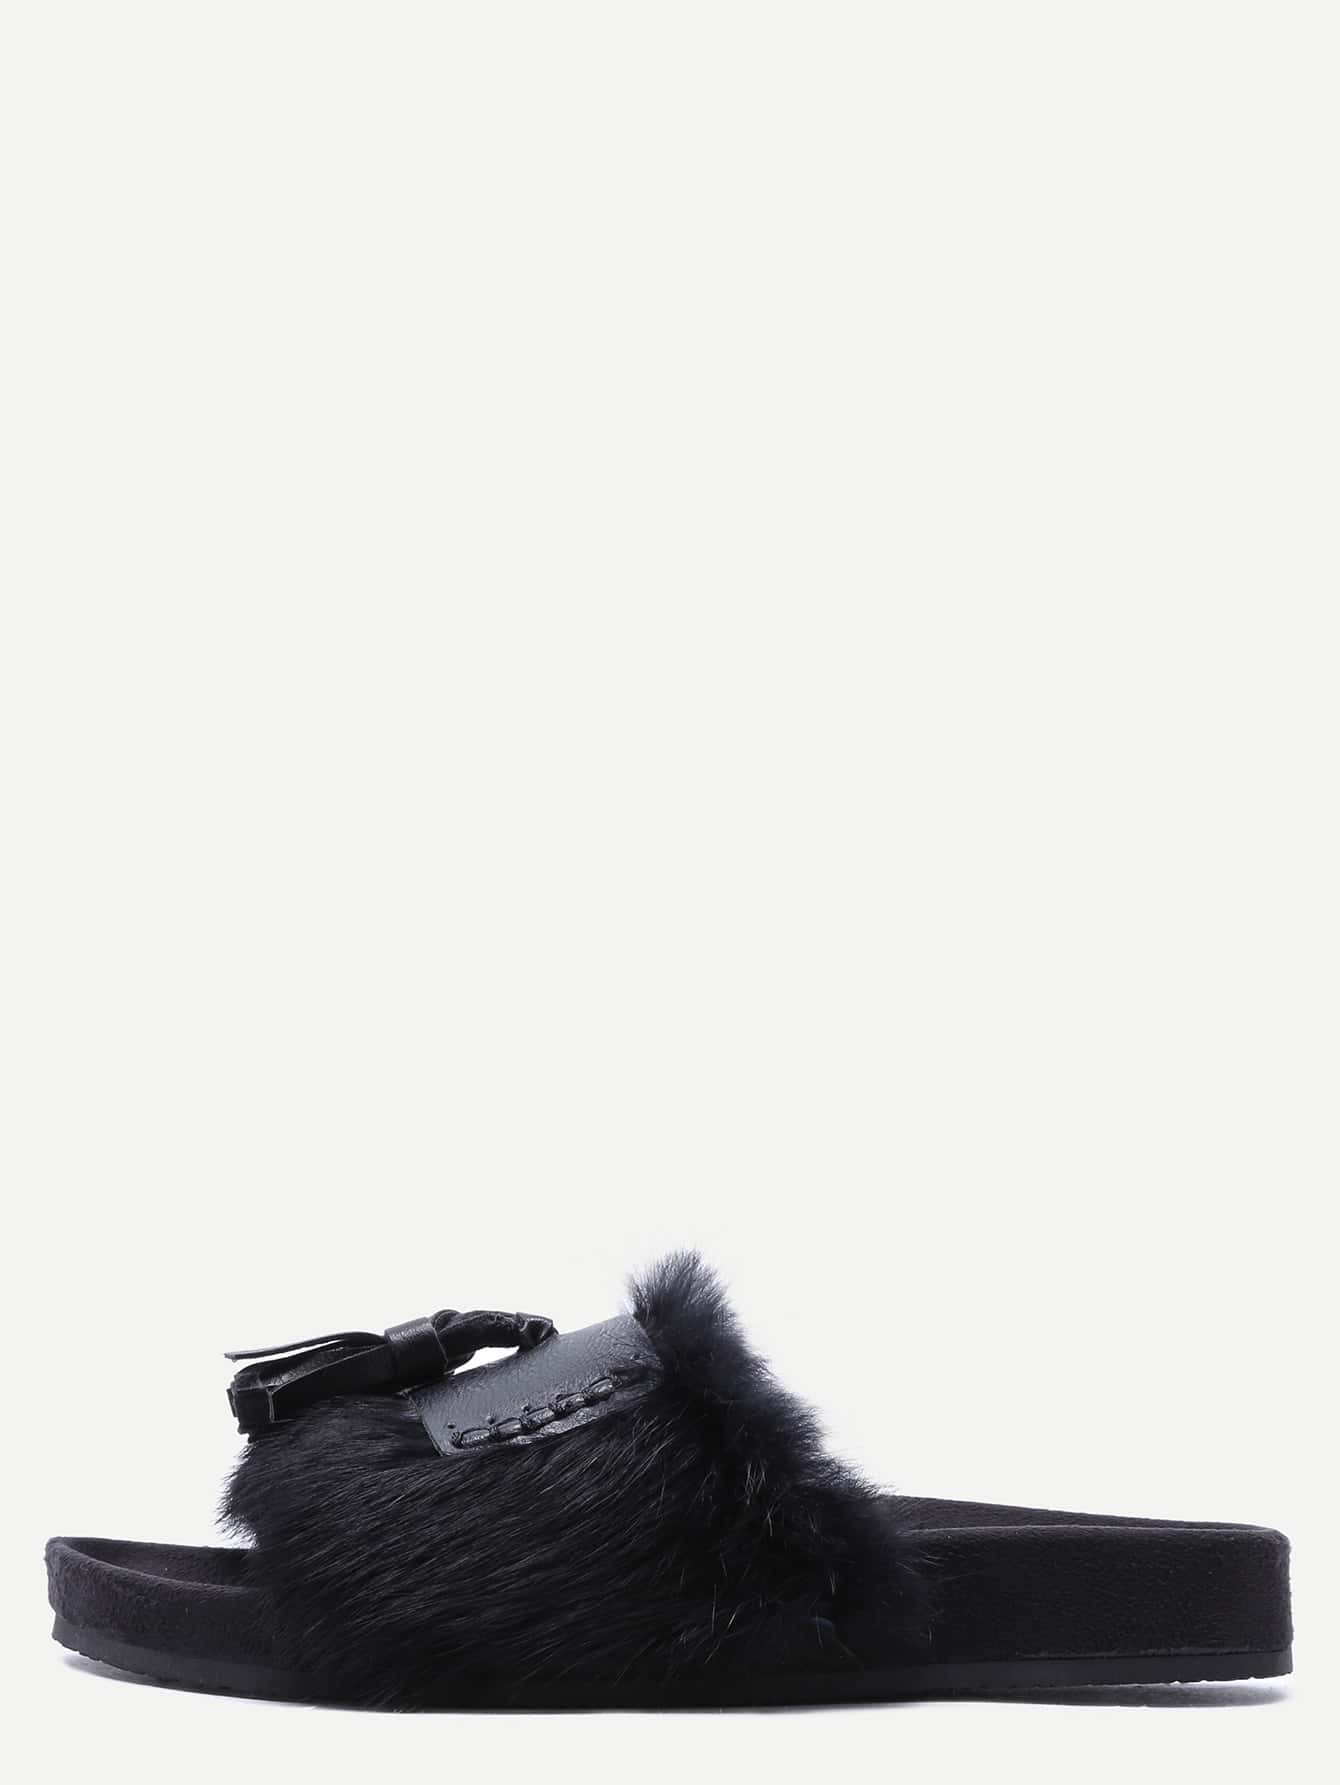 Black Faux Fur Peep Toe Tassel Casual Sandals.